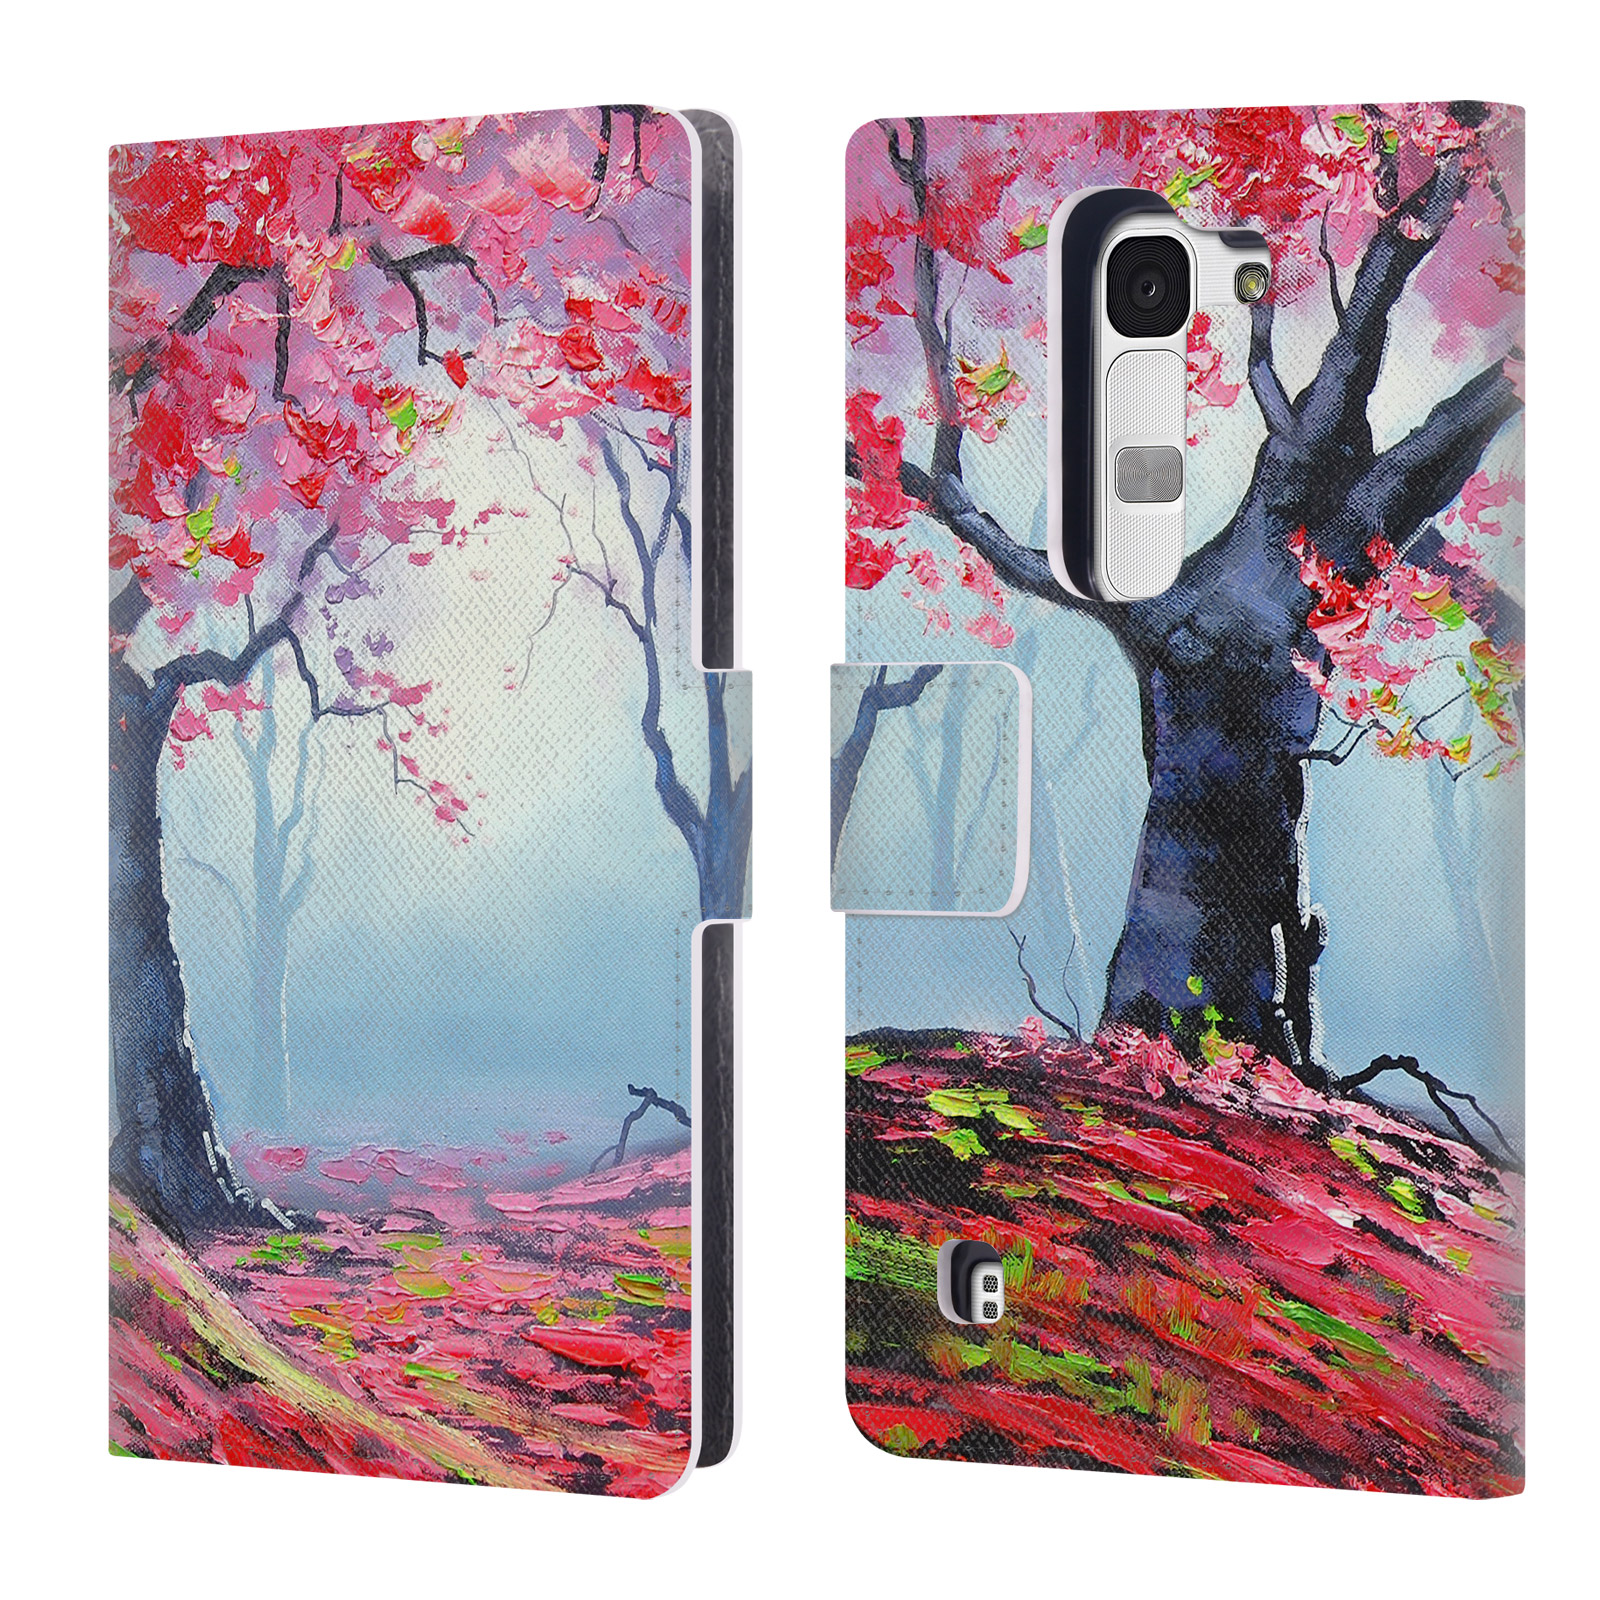 OFFICIAL-GRAHAM-GERCKEN-TREES-LEATHER-BOOK-WALLET-CASE-COVER-FOR-LG-PHONES-2